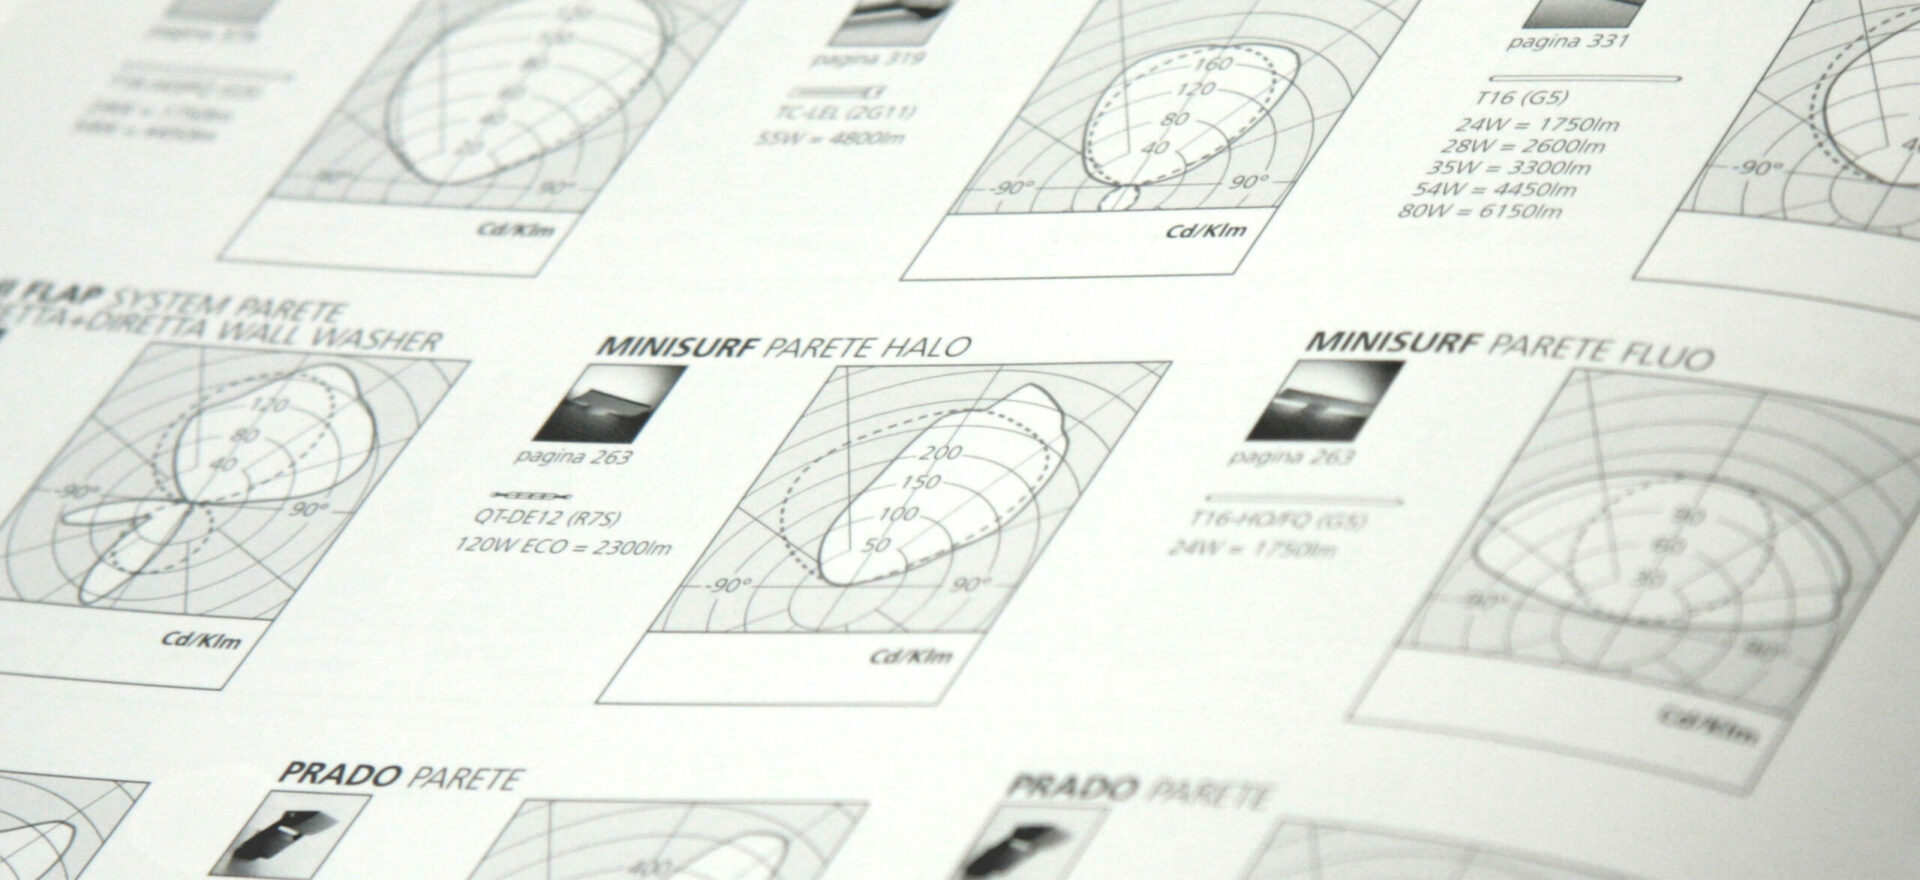 Technical data inside the brochure designes for Artemide Architectural showing the distribution of the intensity of the lights with photometric polar diagrams in Cd/Klm.